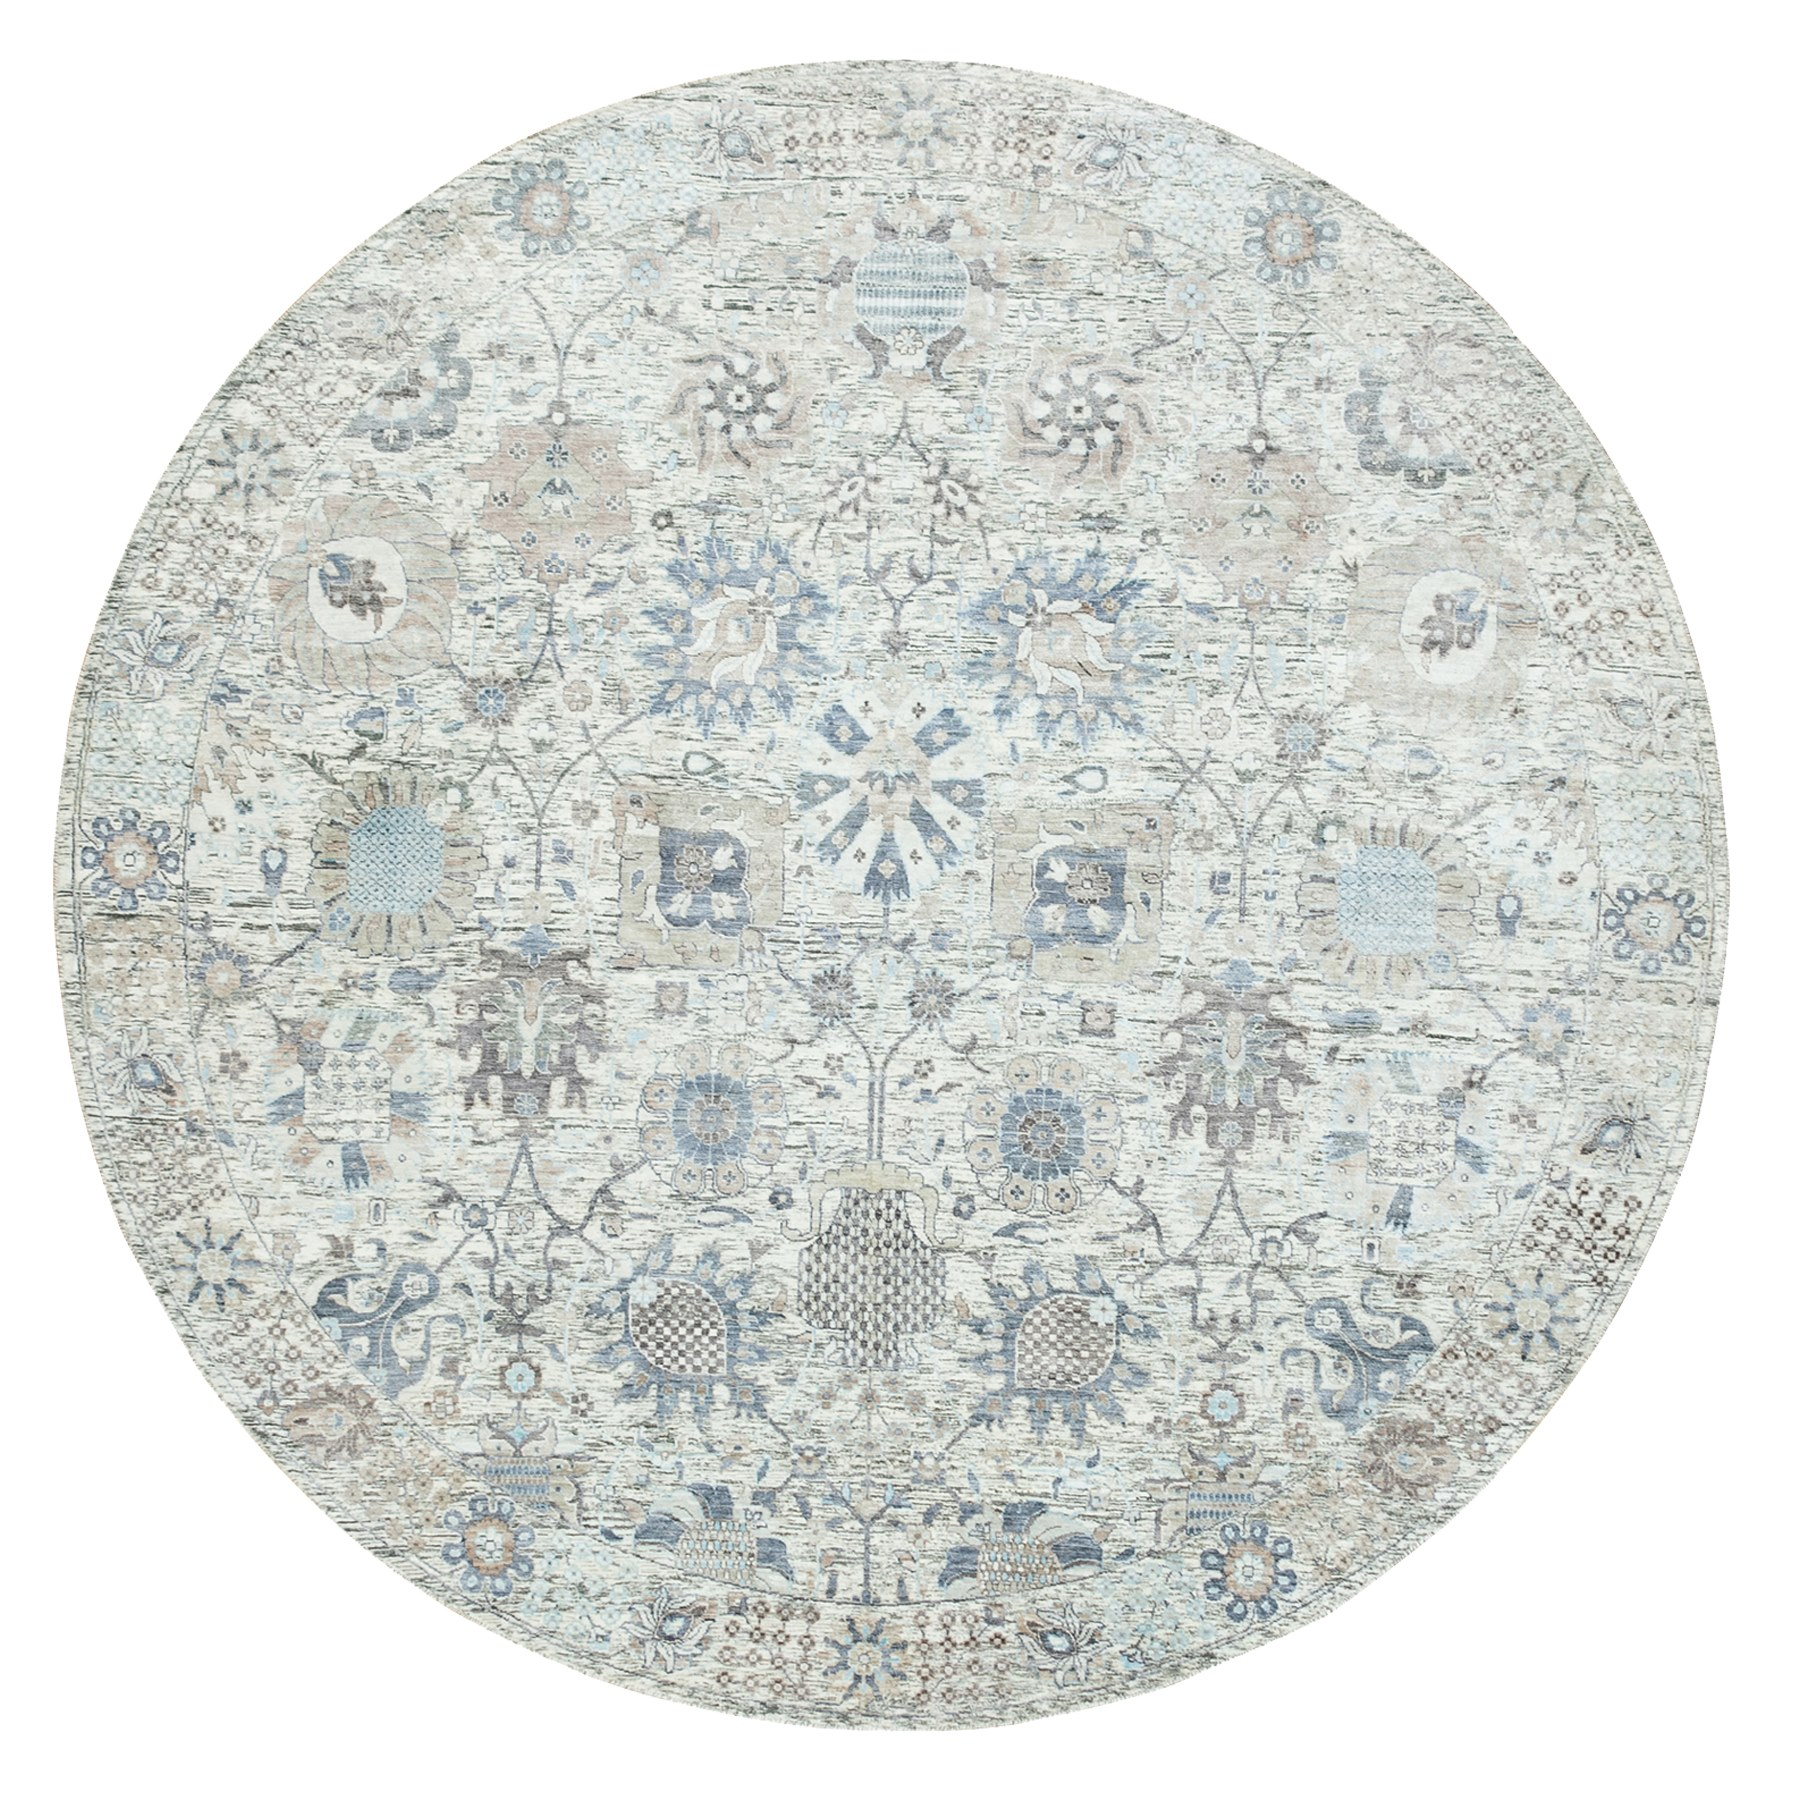 9'x9' Round Hand Knotted Ivory Silk With Textured Wool Tabriz Oriental Rug